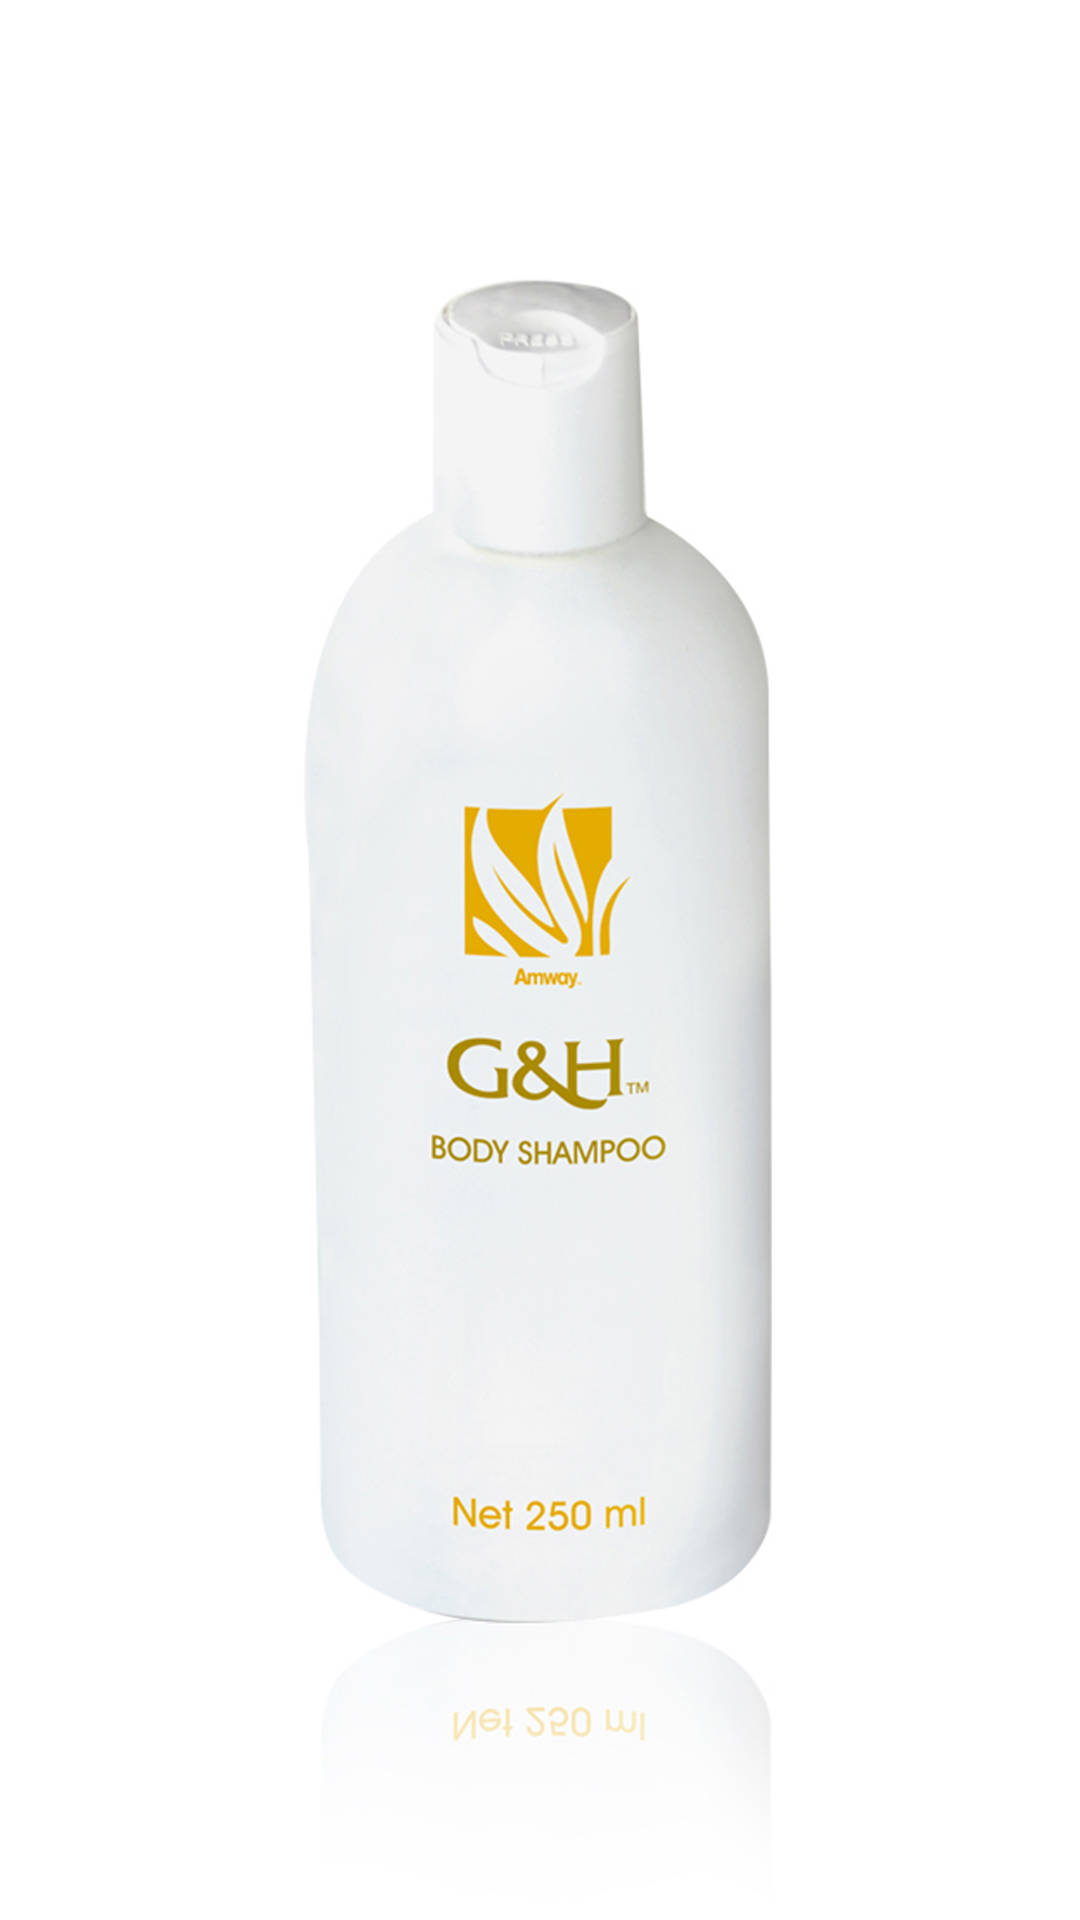 Gh Body Shampoo Photos Images And Wallpapers Mouthshutcom